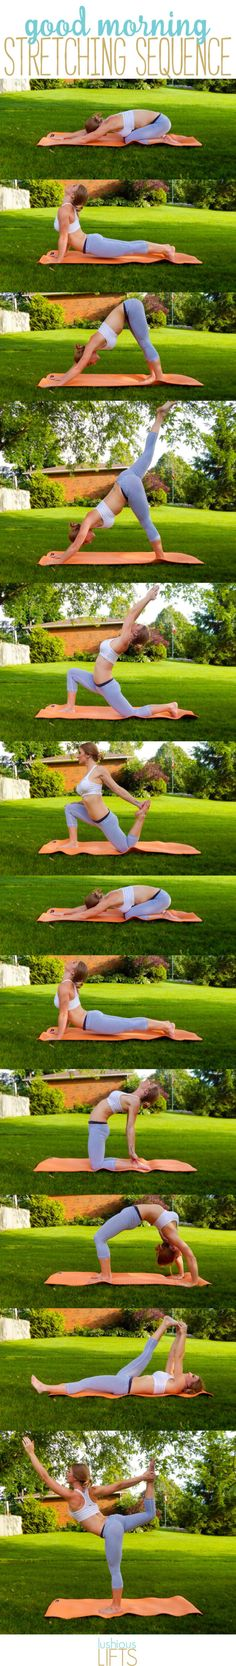 Good Morning Stretching Sequence #Yoga